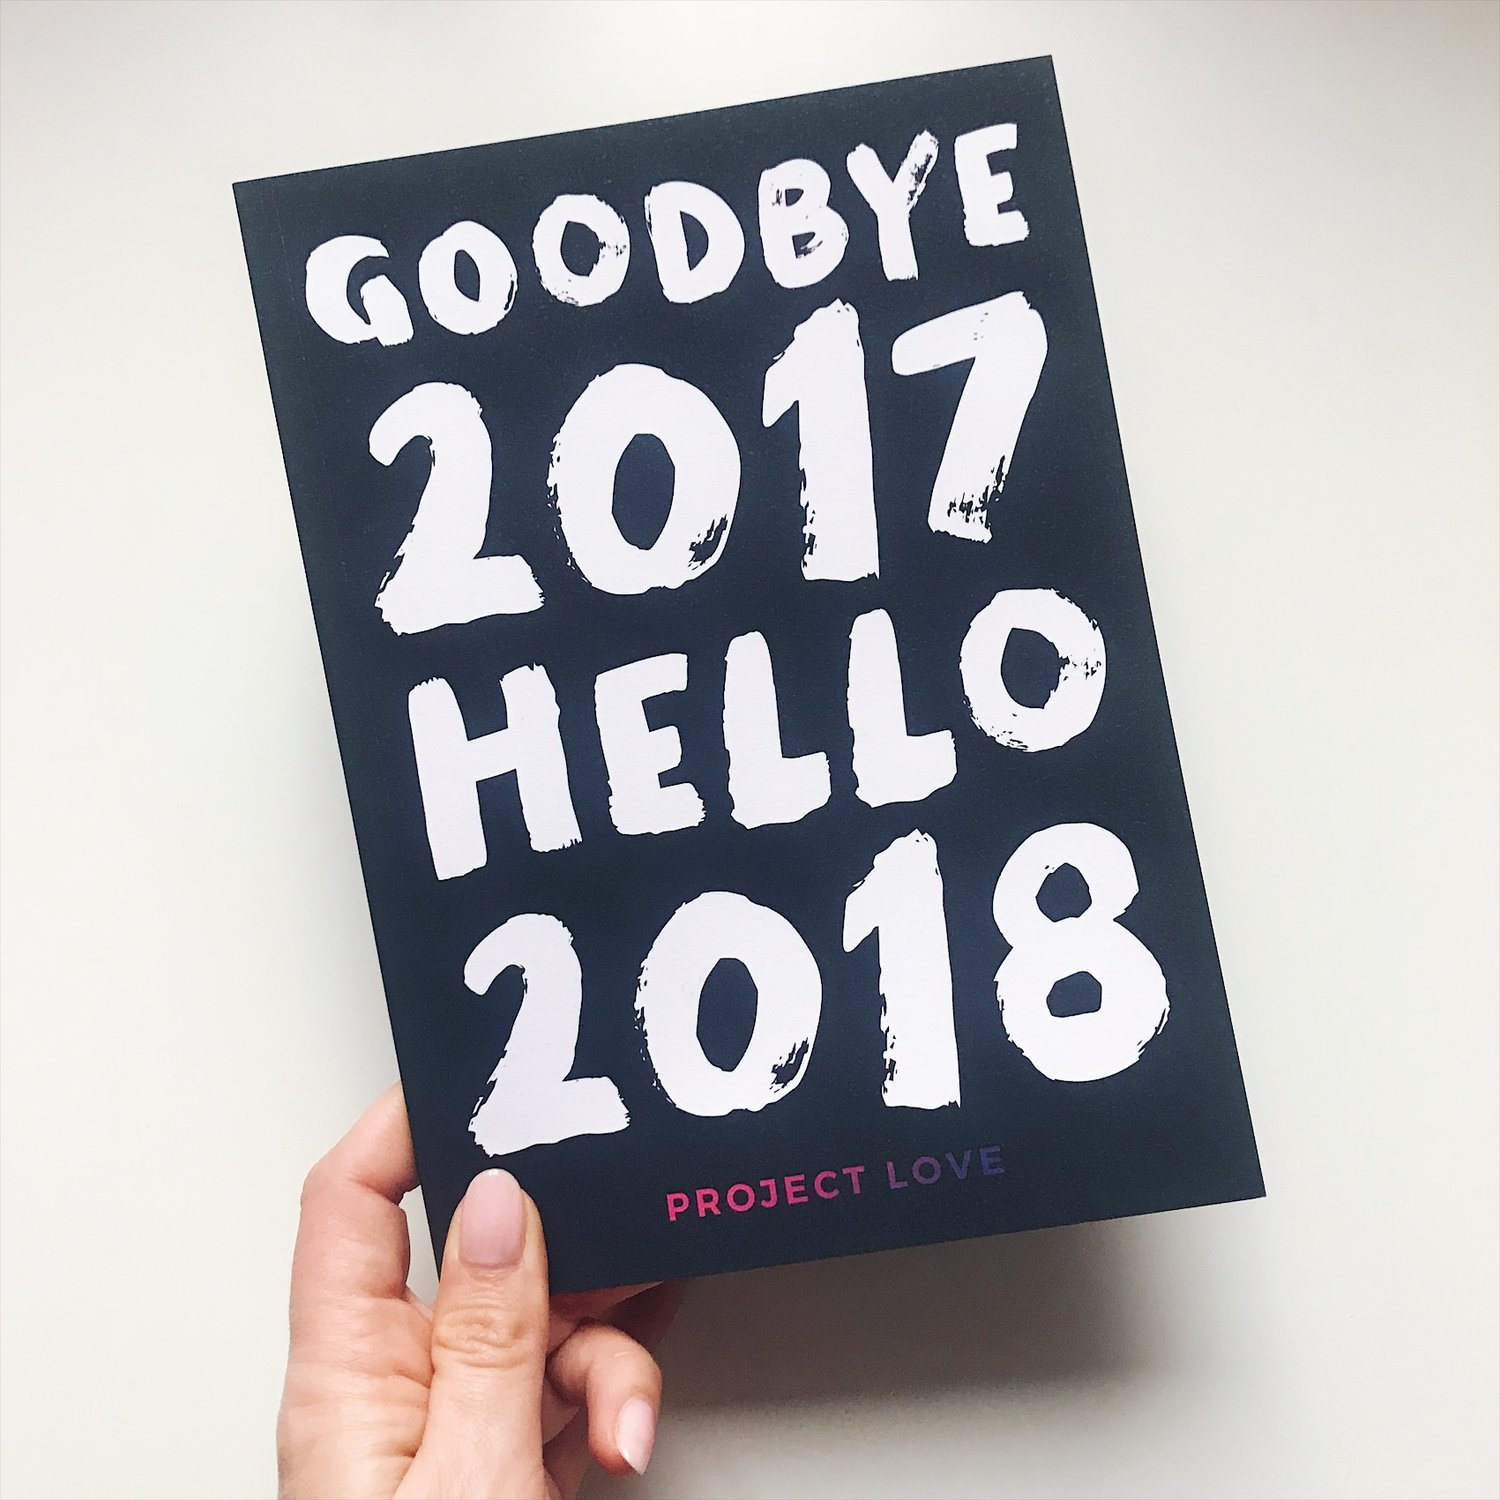 Goodbye+Hello+Book+Cover+Design+for+Project+Love.jpeg